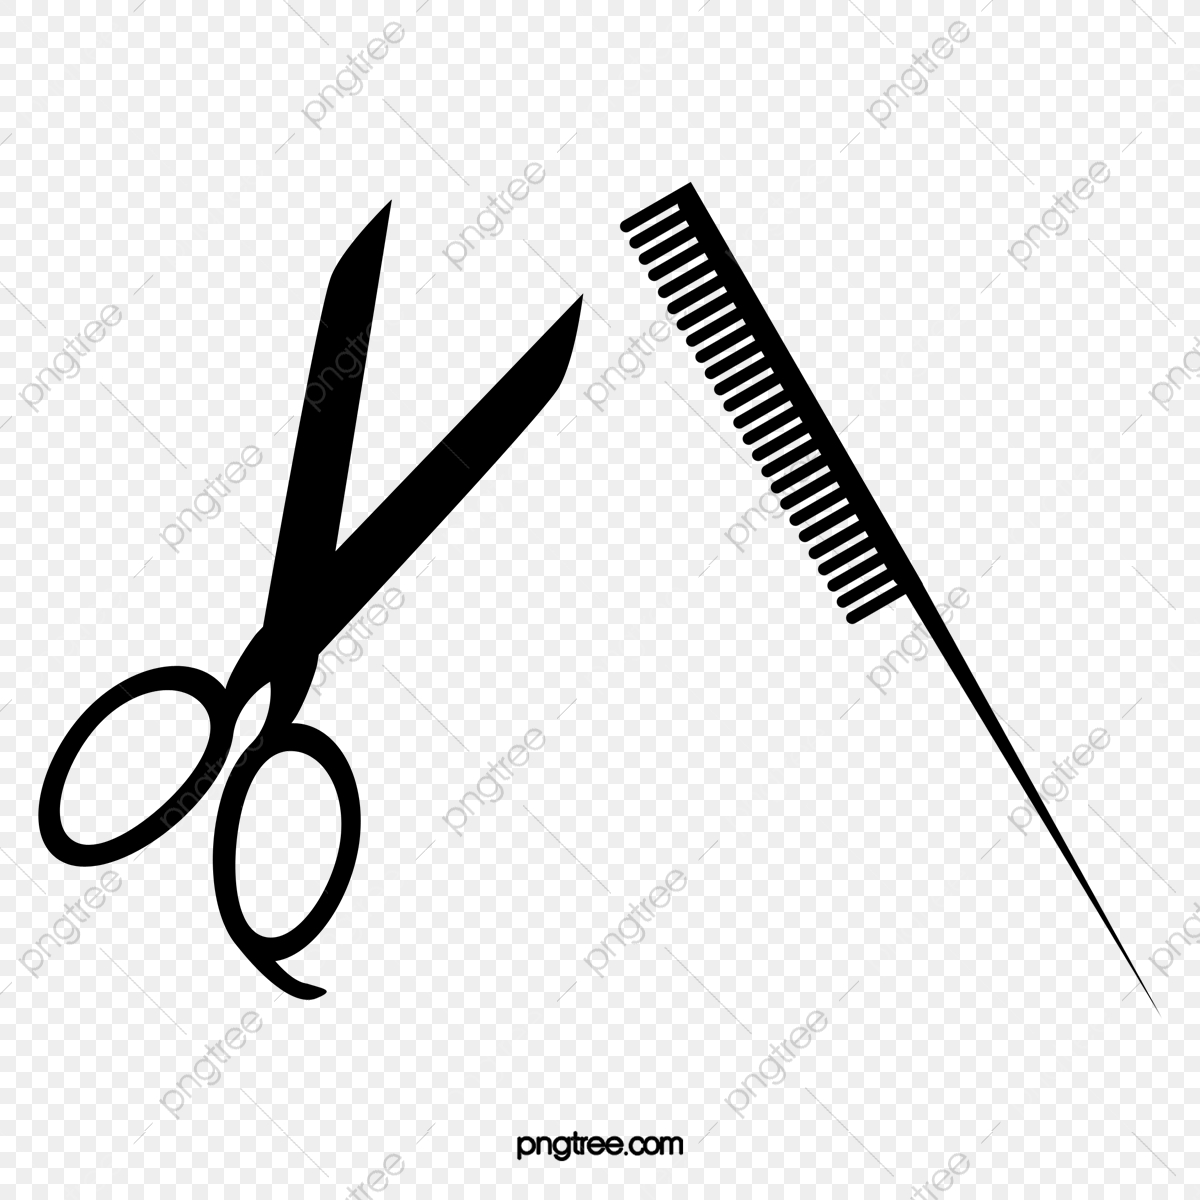 Vector Scissors Comb, Comb Clipart, Scissors, Comb PNG.